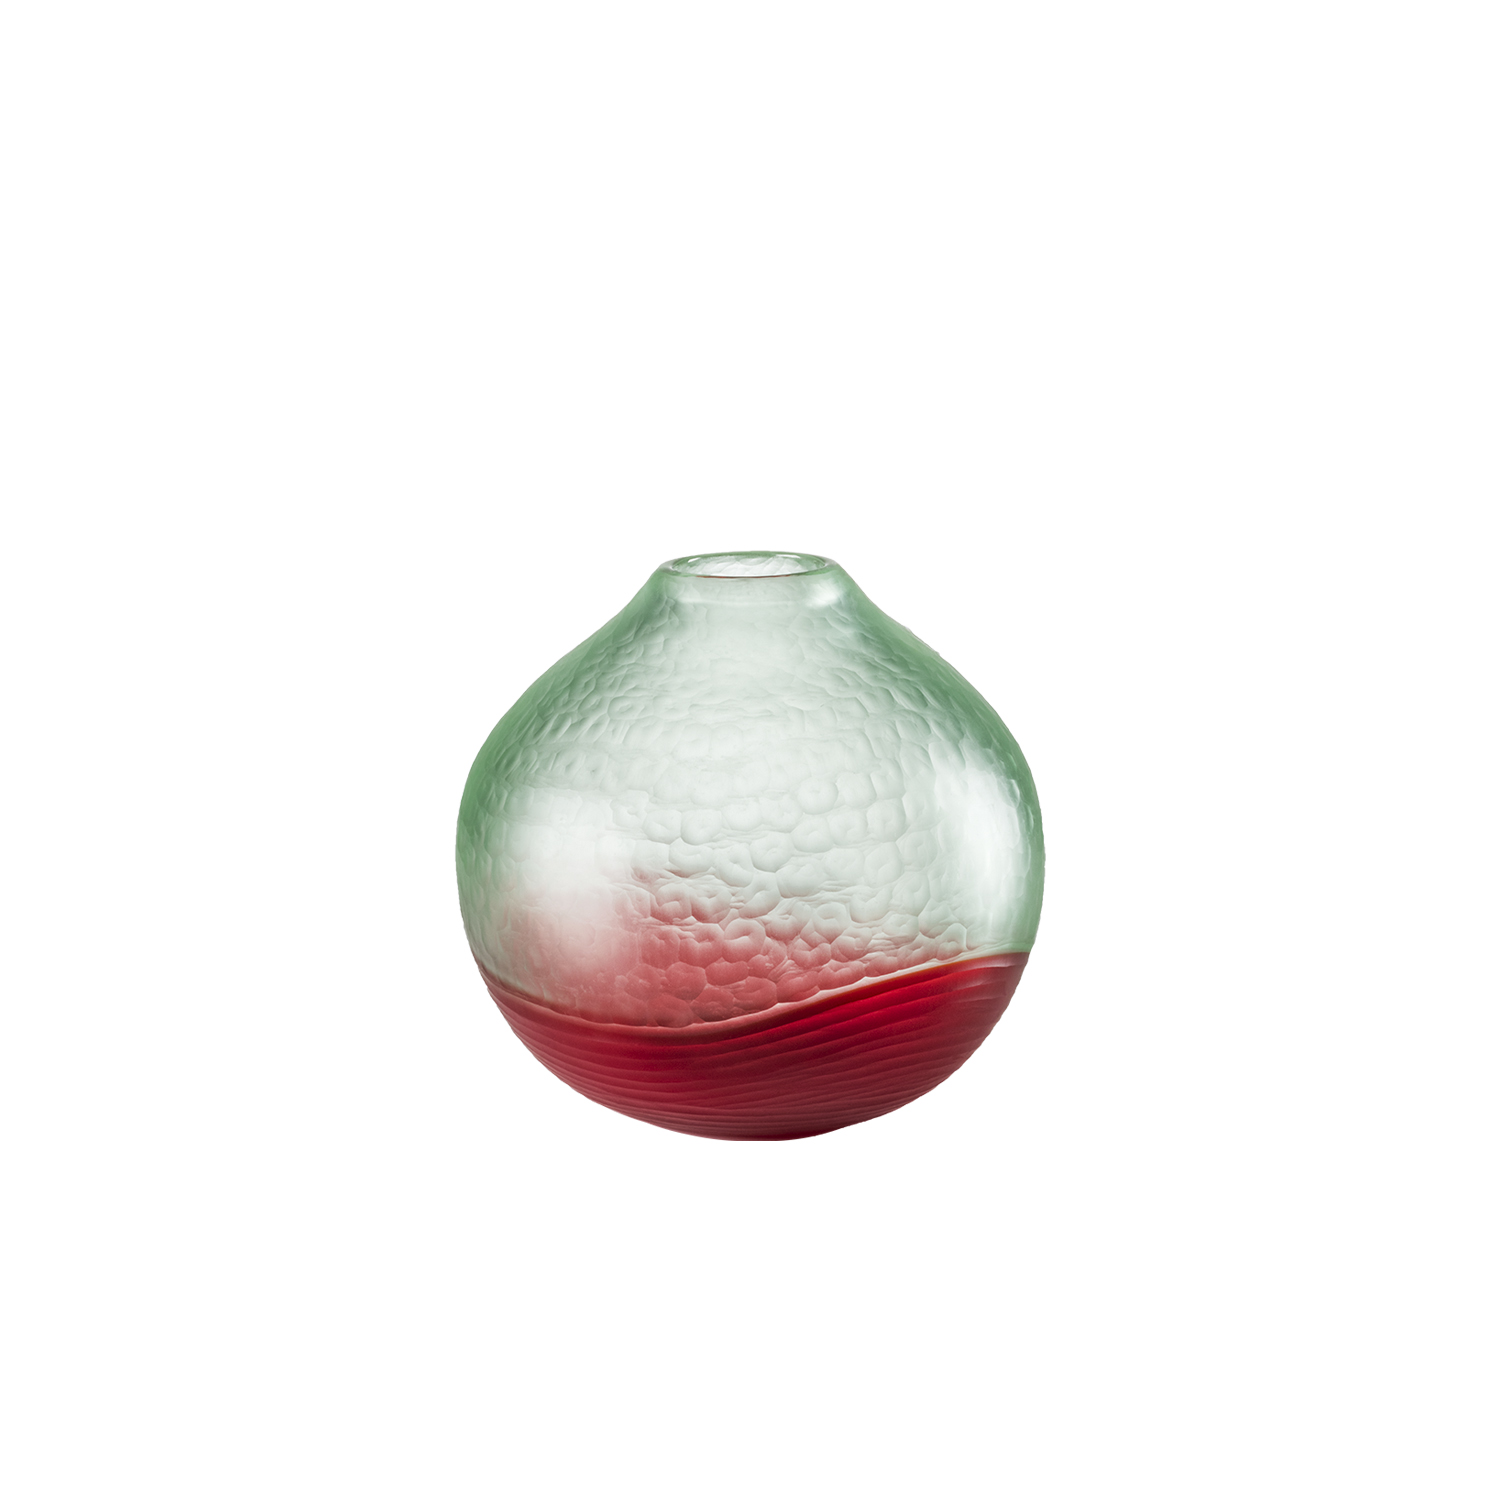 Battuto Bicolore Vase - The liveliness of sea bubbles meets the murmur of bright red sand waves on the surface of this work. The raw power of the elements enclosed in an archaic shape recalling a small talisman | Matter of Stuff